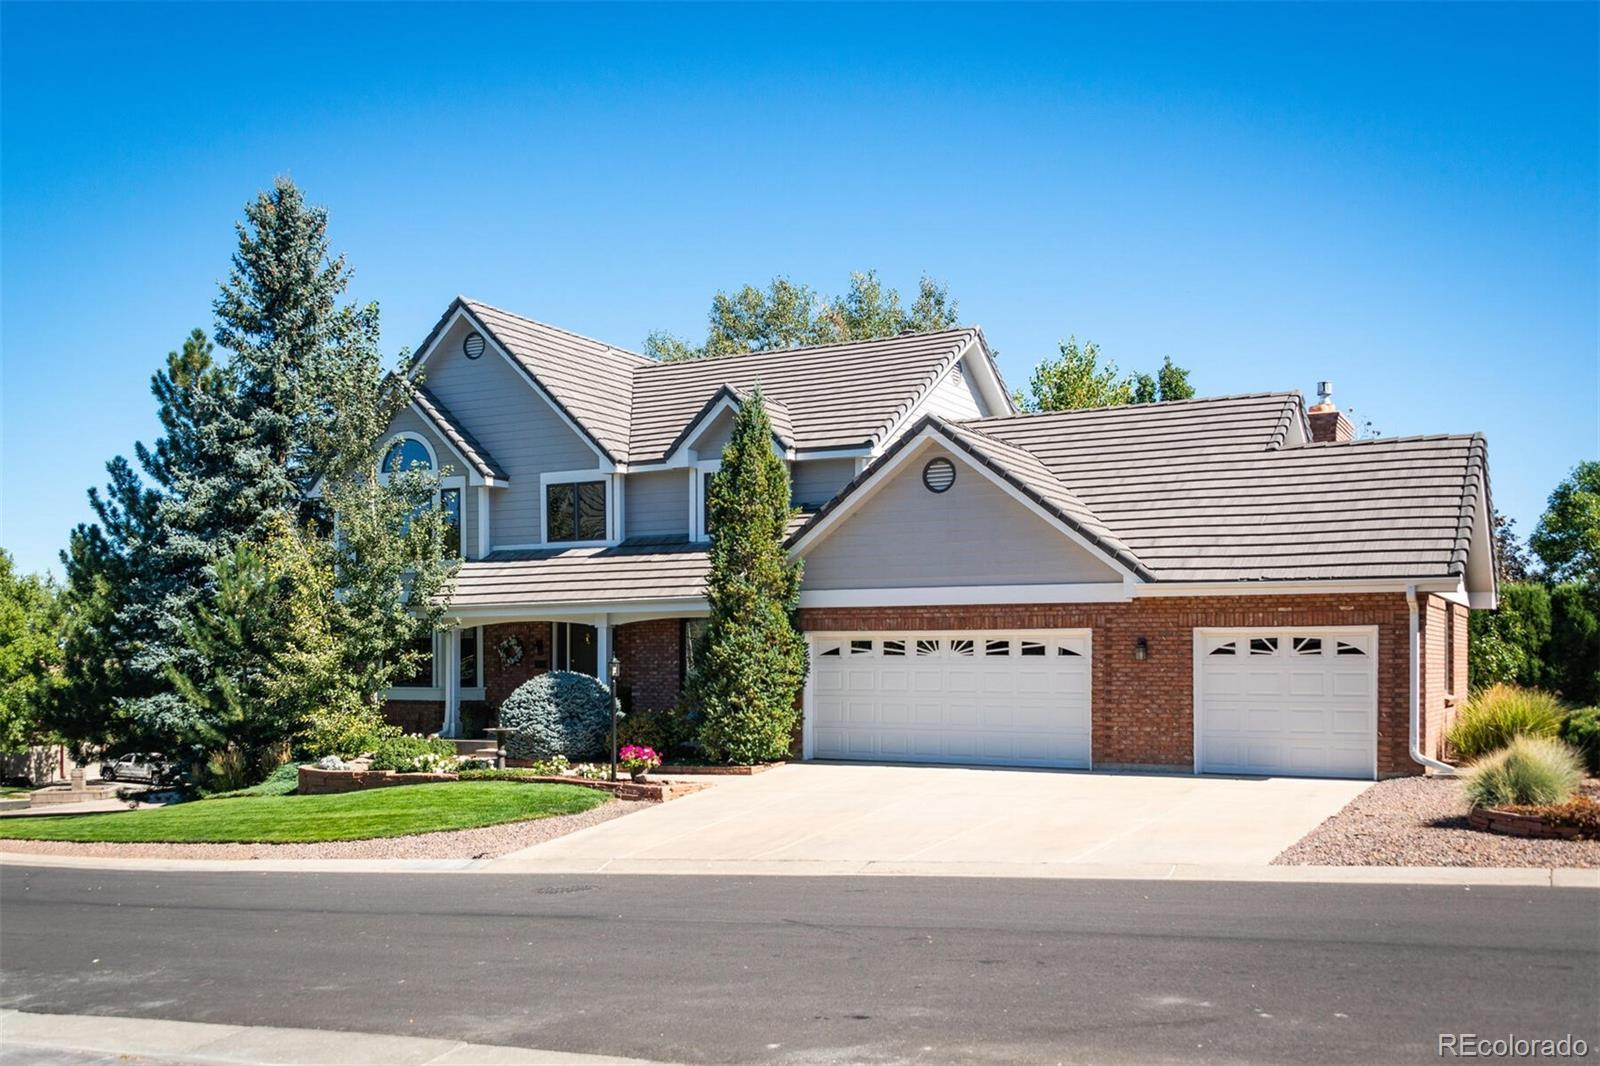 13888 W 59th Place, Arvada, CO 80004 - #: 9814991